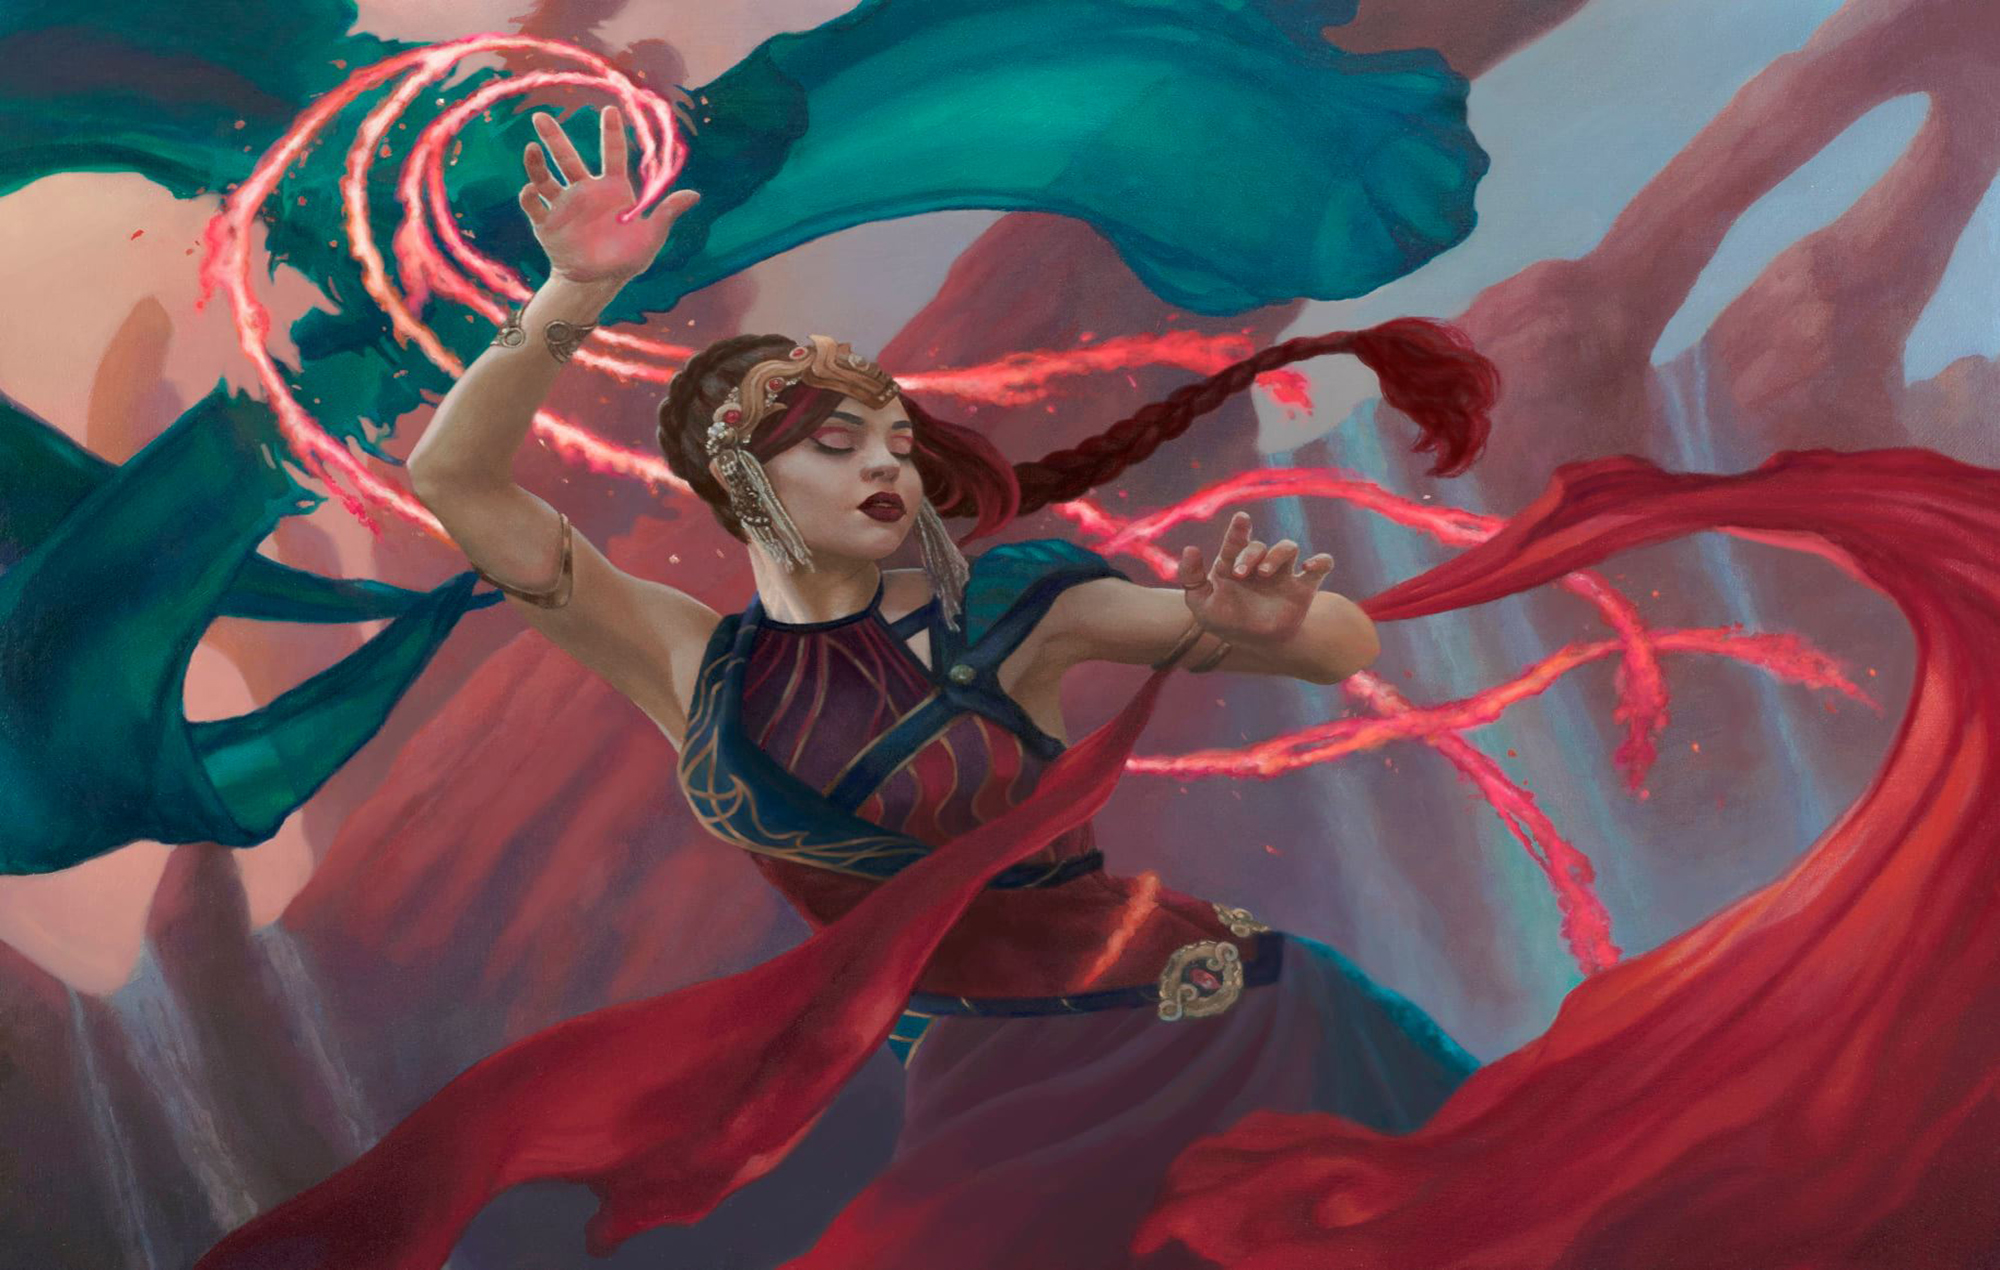 Magic: The Gathering artwork for Commander 2021. Image Credit: Wizards of the Coast